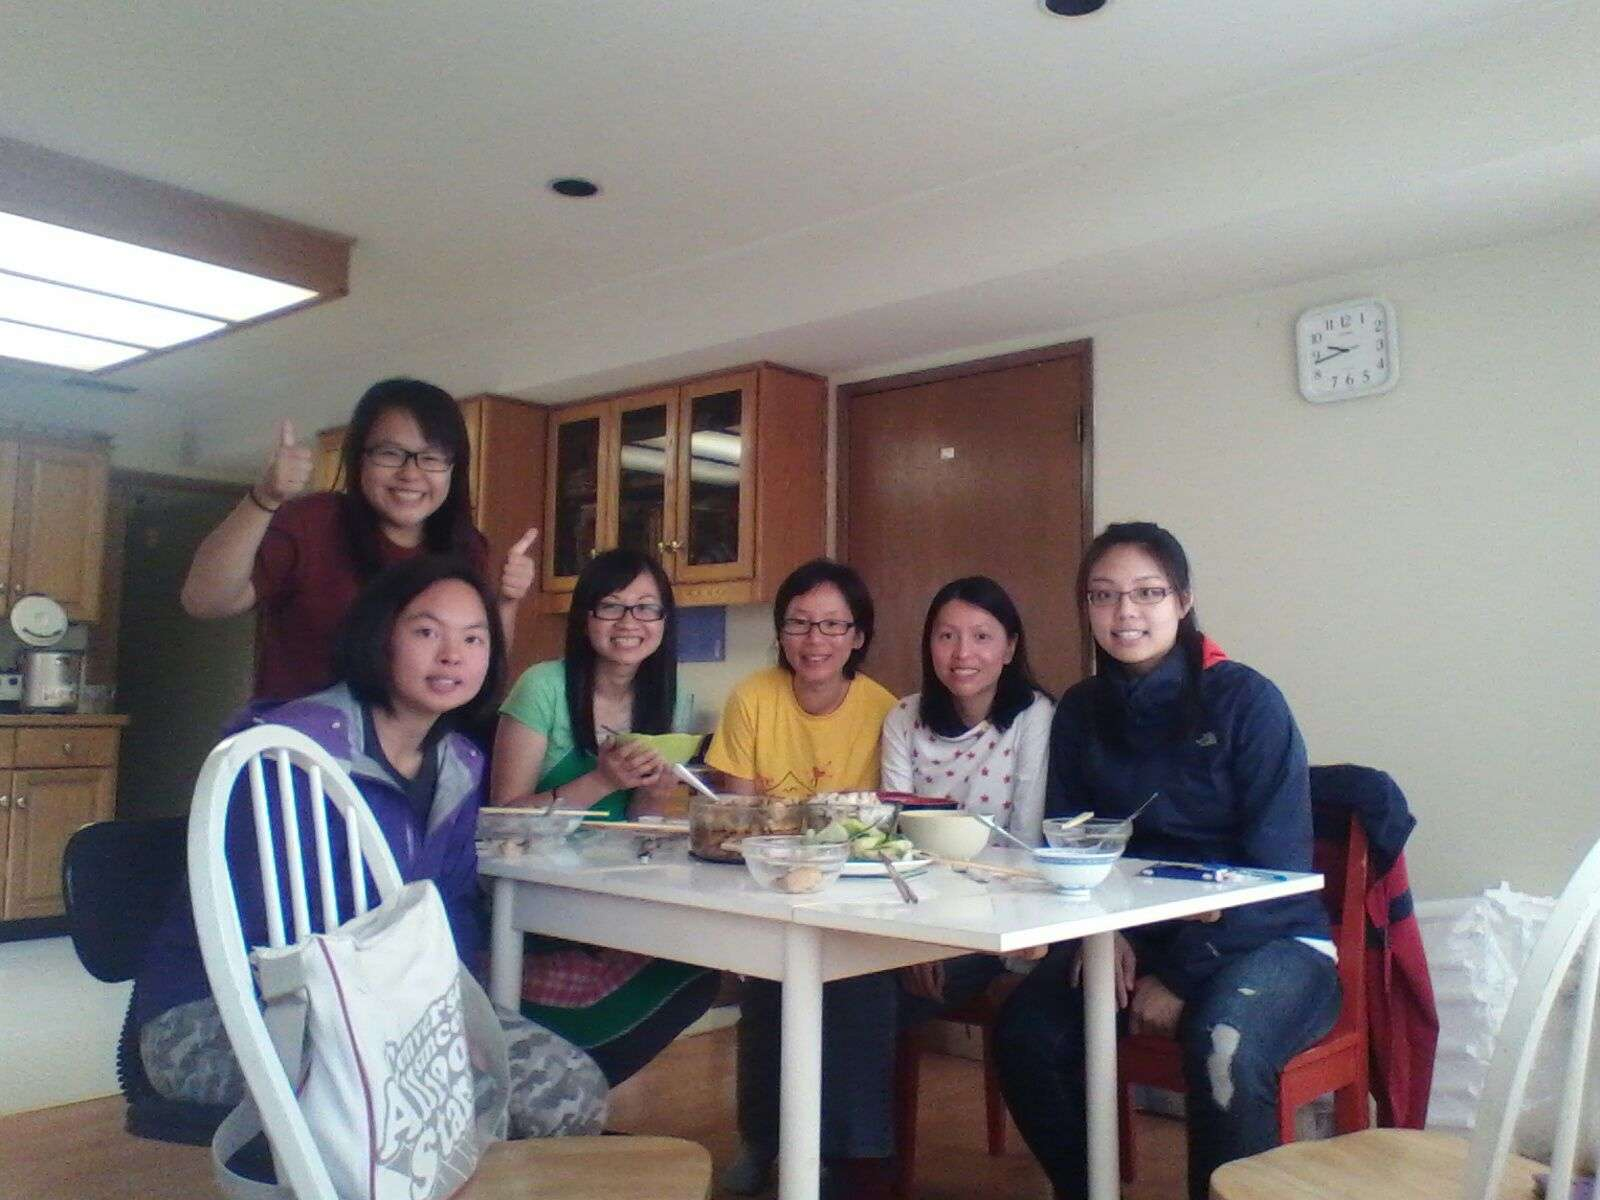 I enjoy the coworkers' dinner gatherings! – Tuhien Trieu